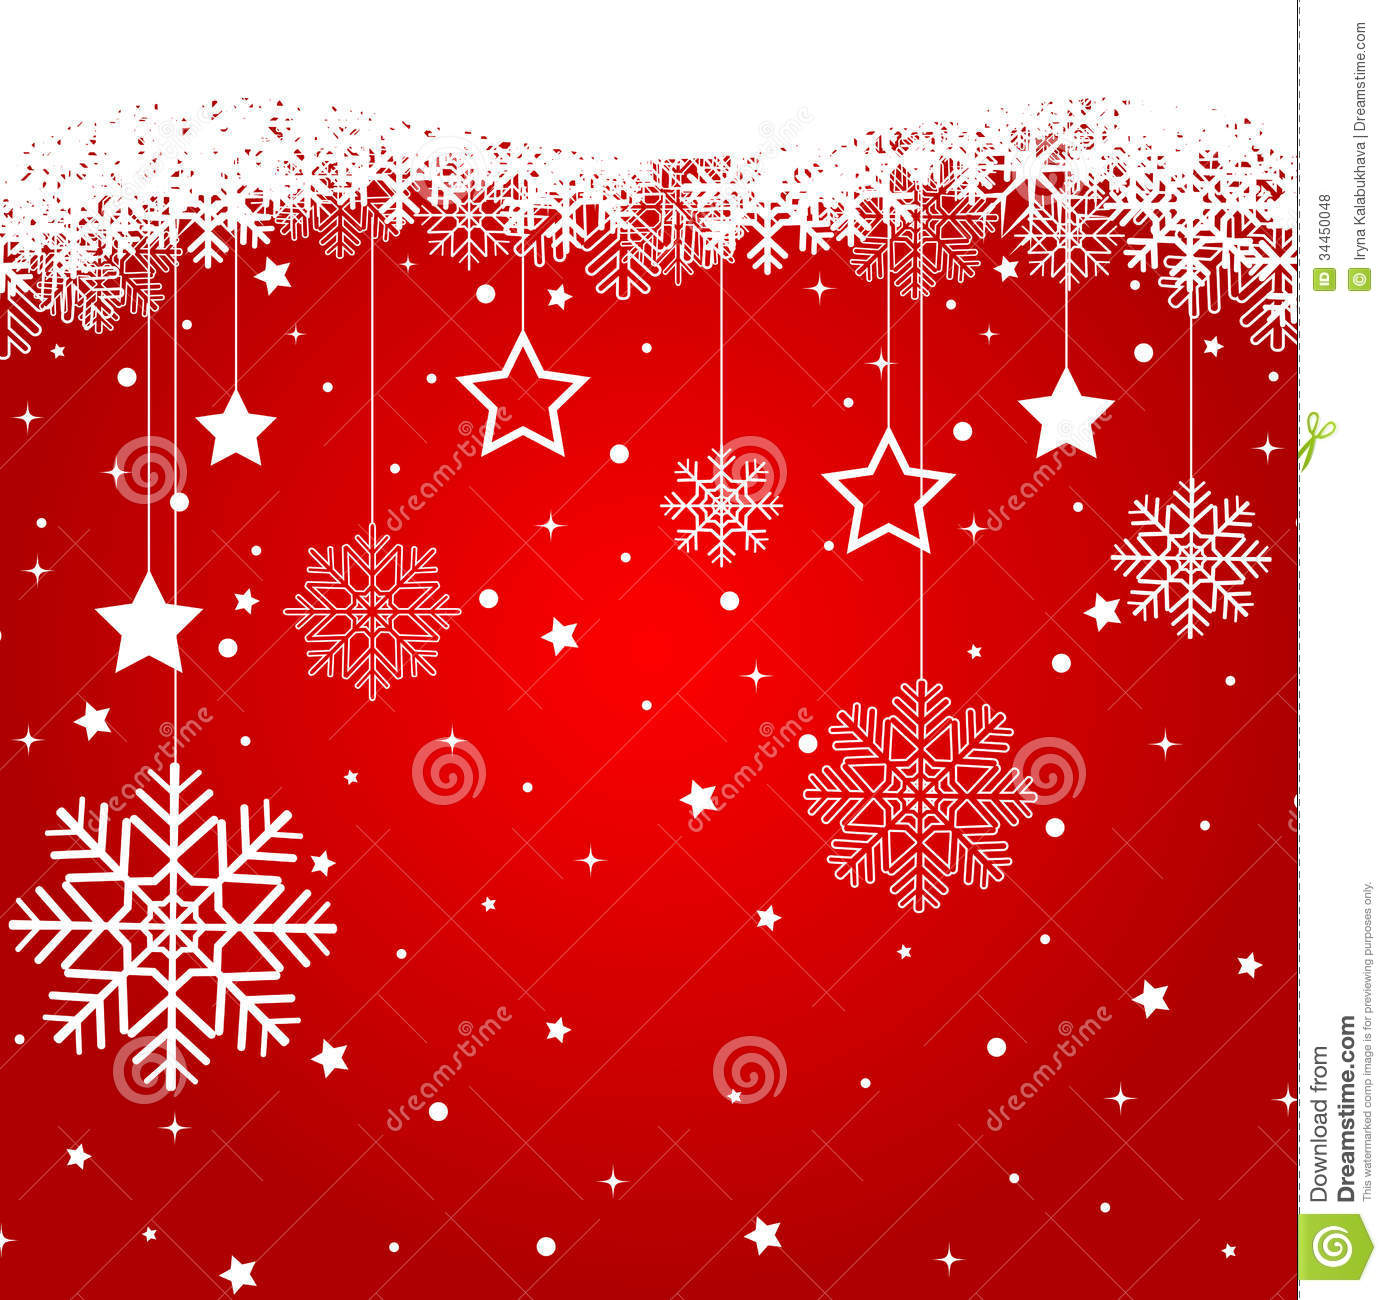 Red Christmas Background Royalty Free Stock Photos - Image: 34450048